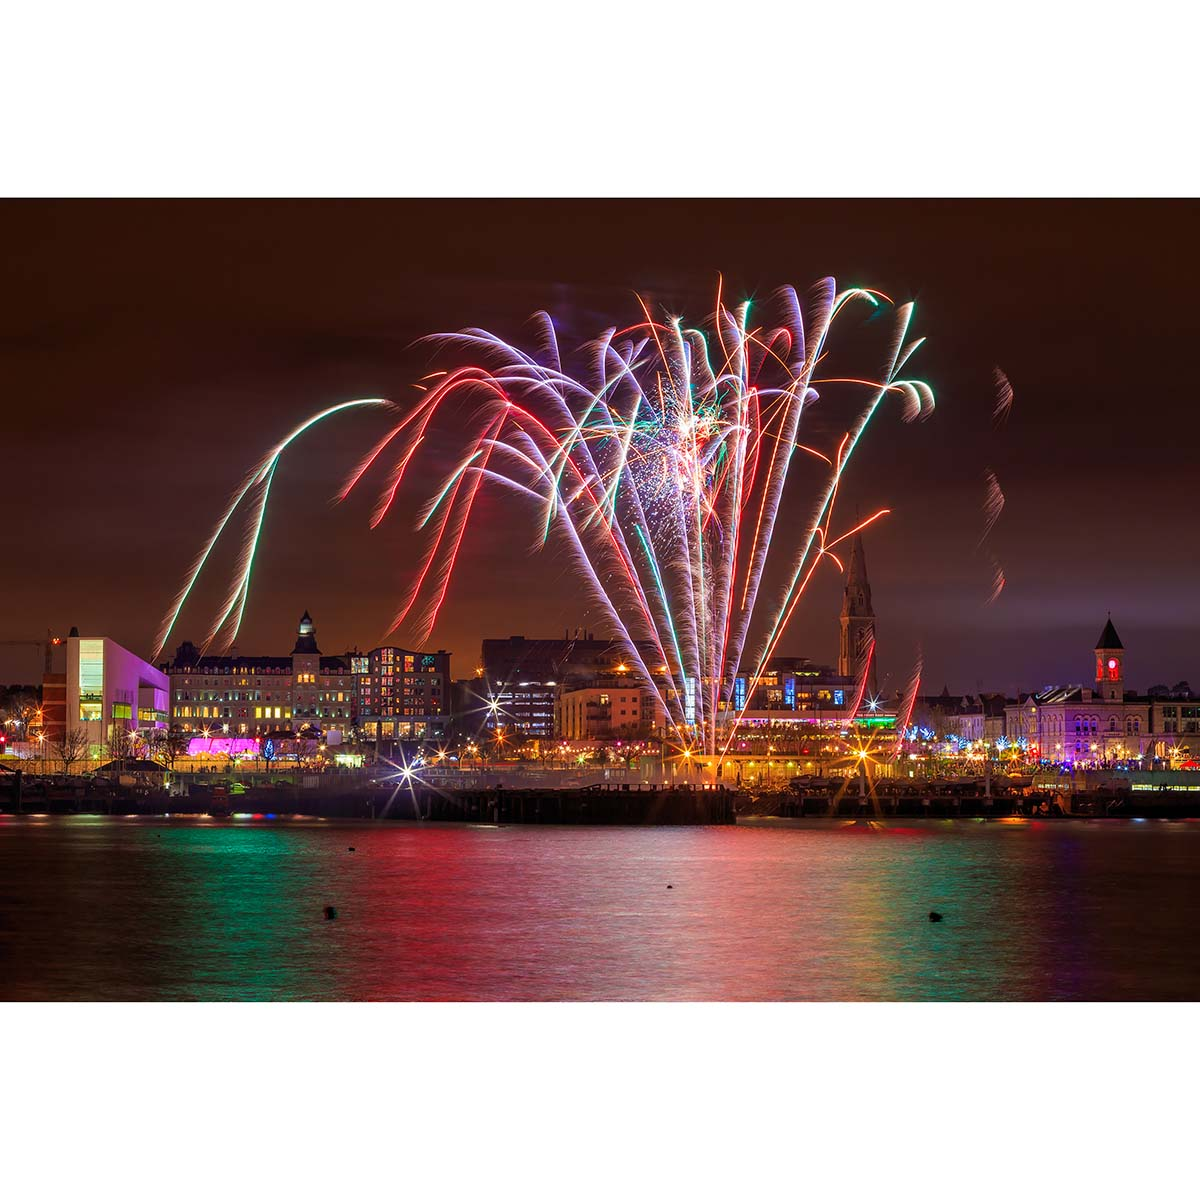 Fireworks display in Dun Laoghaire Harbour